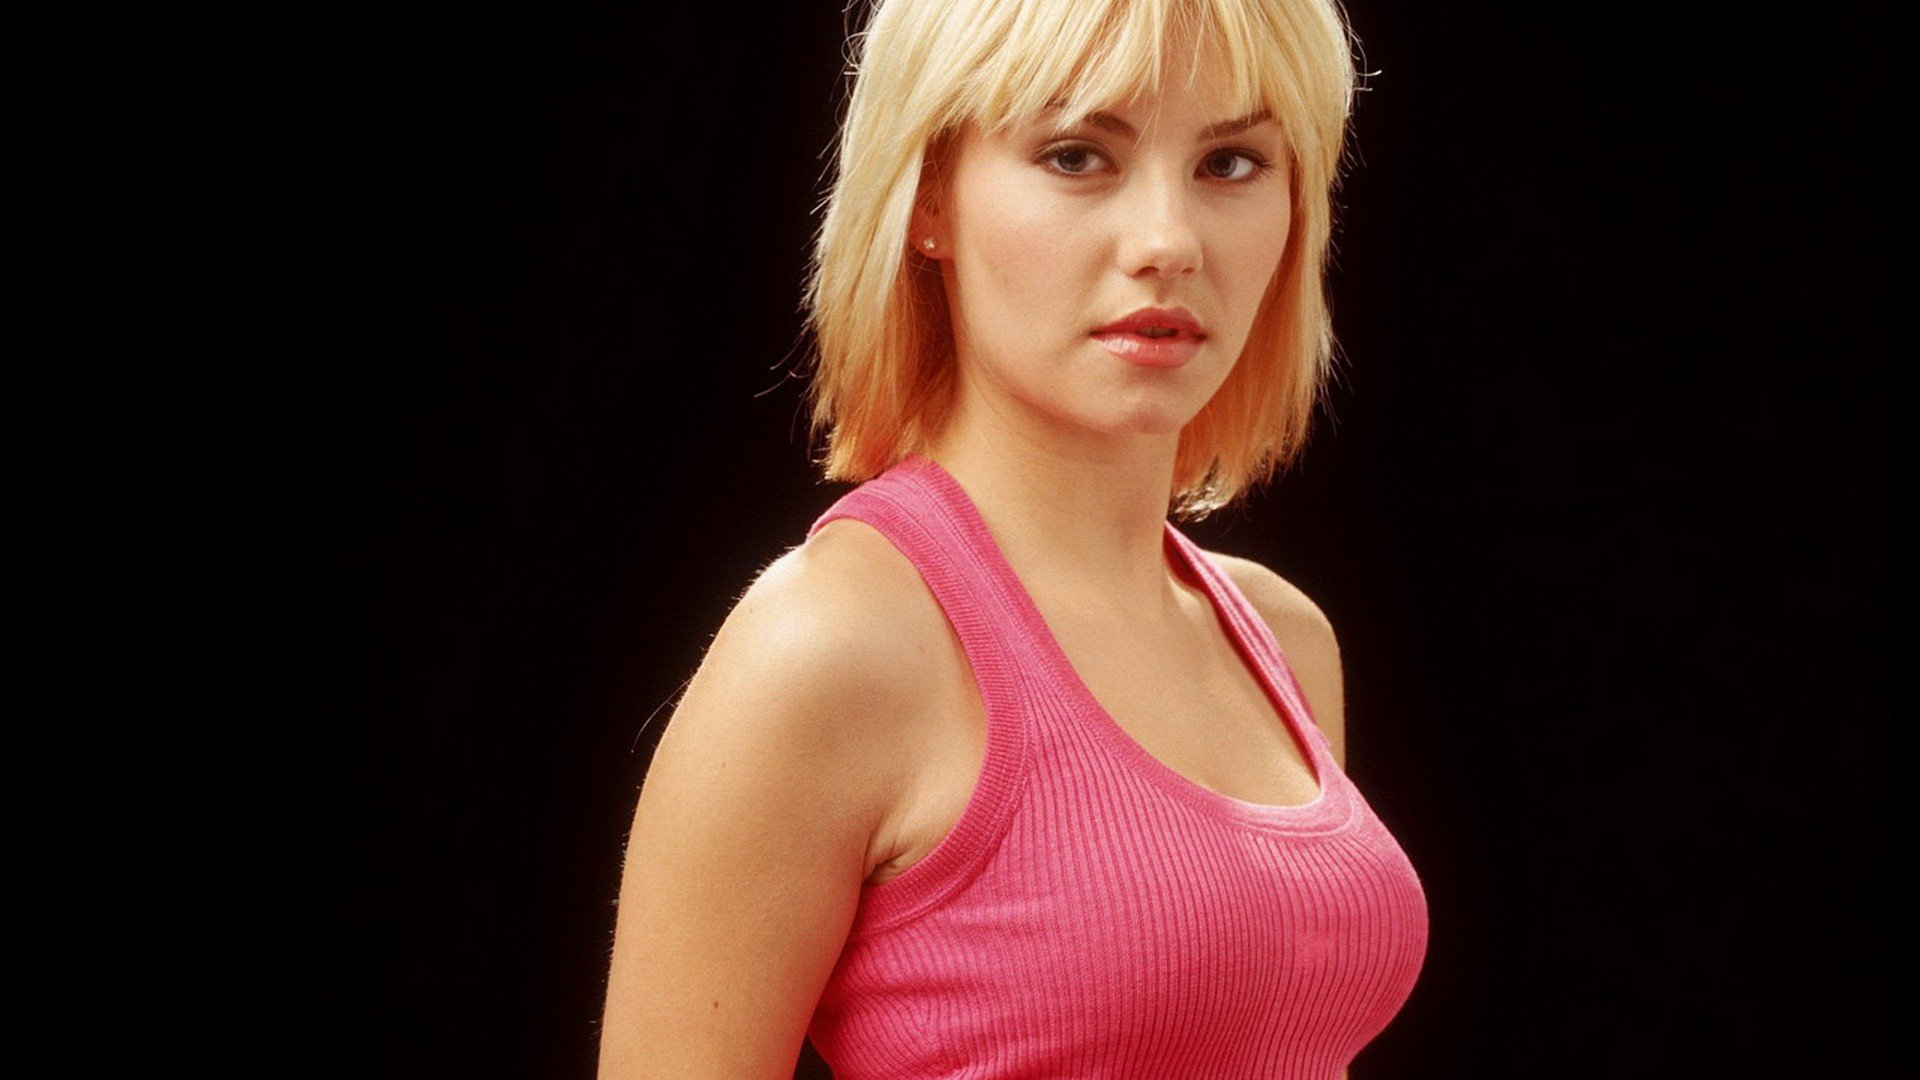 Elisha Cuthbert Hd Wallpapers: Elisha Cuthbert Wallpapers Images Photos Pictures Backgrounds